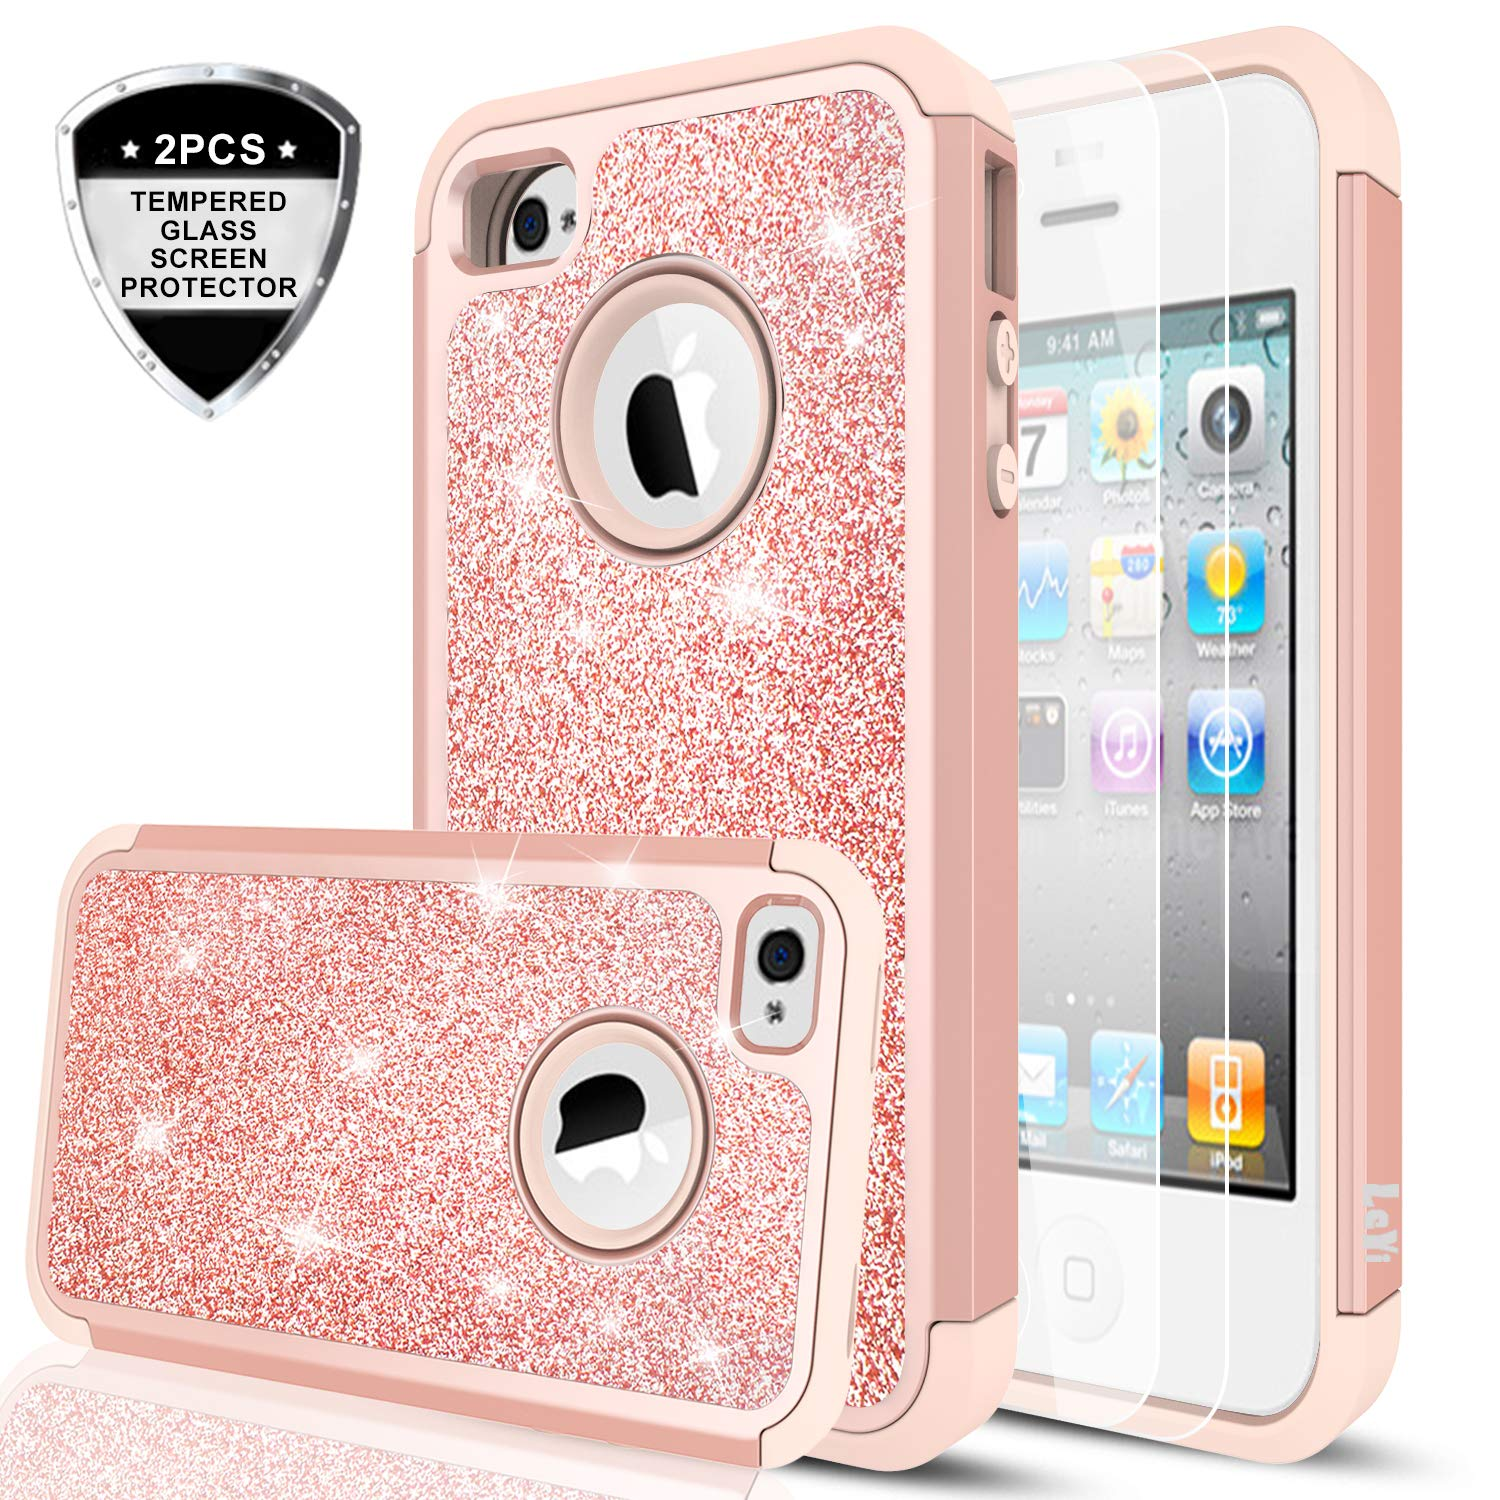 a01b691abc iPhone 4S Case,iPhone 4 Case with Tempered Glass Screen Protector [2  Pack],LeYi Glitter Bling Girls Women Dual Layer Heavy Duty Protective Phone  Case for ...